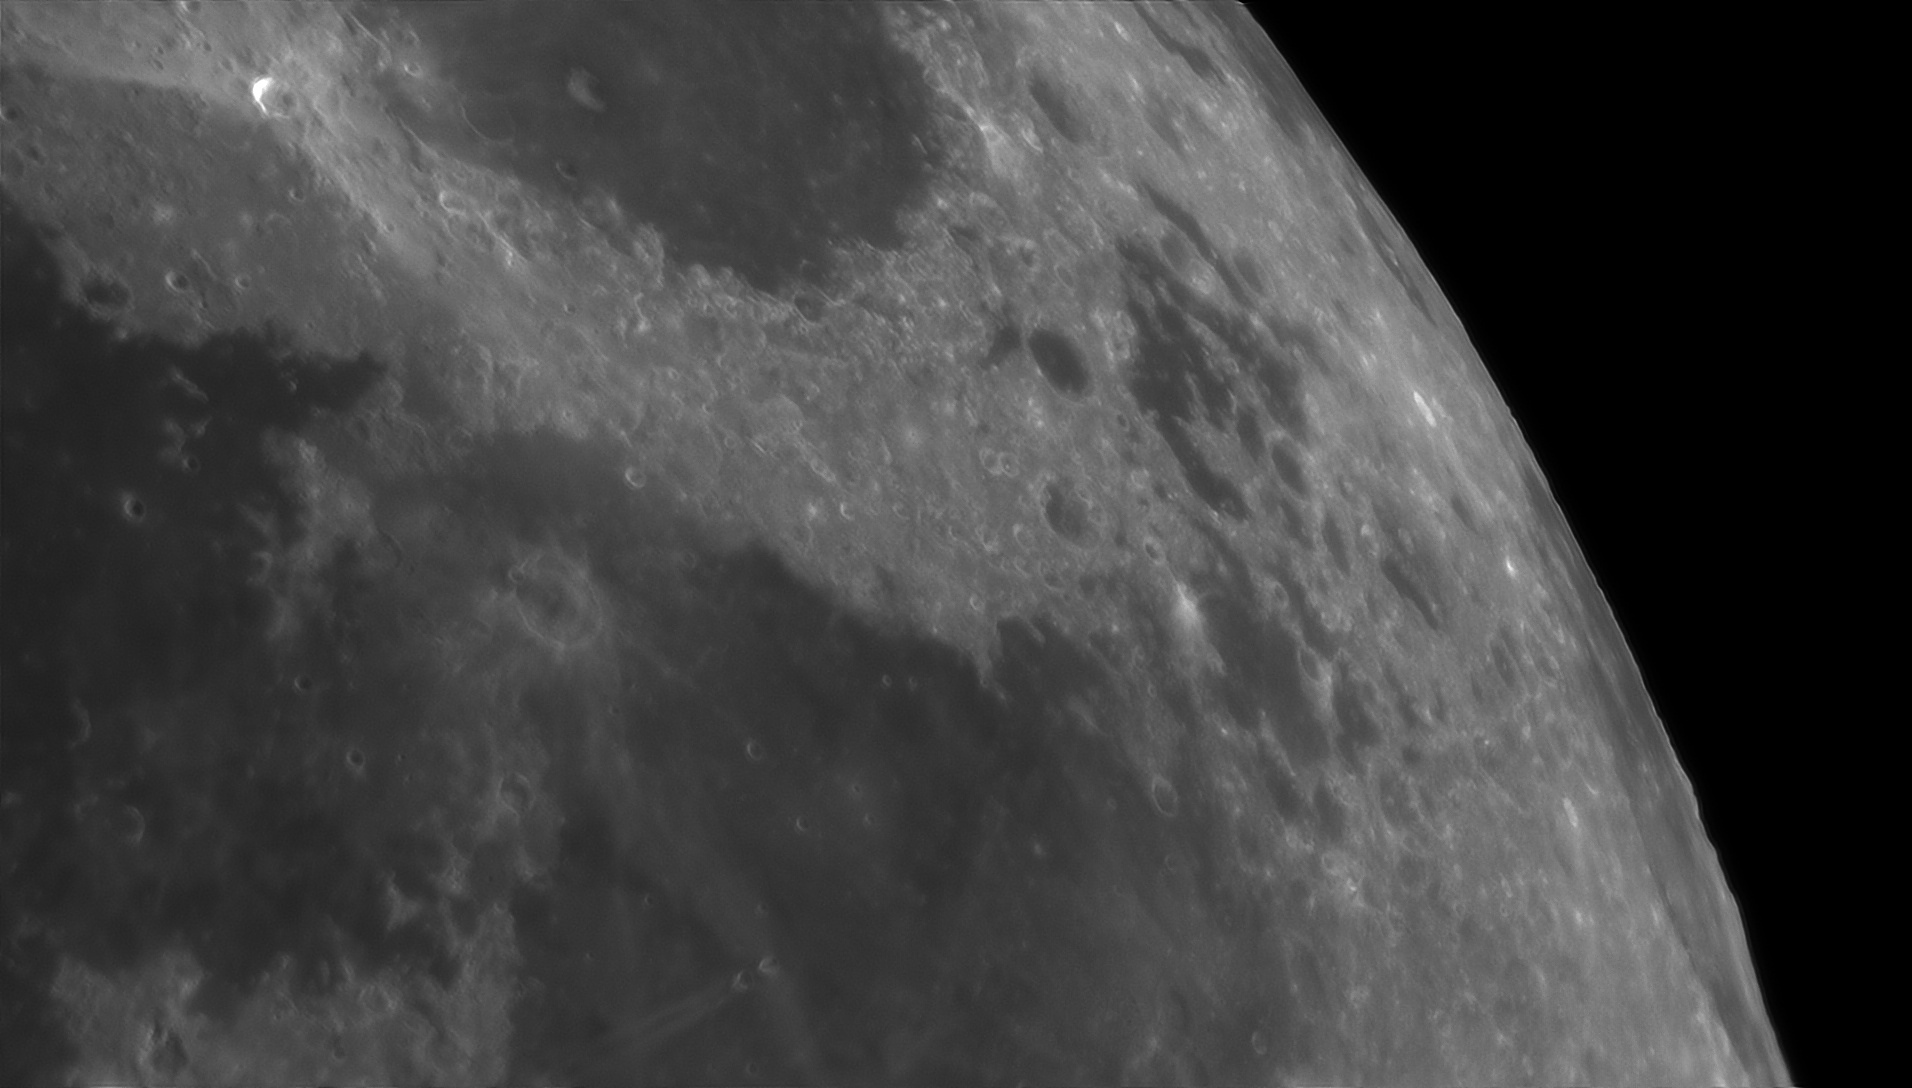 5d0185b6db15f_Moon_225516_100619_ZWOASI290MM_Rouge_23A_AS_P30_lapl4_ap899ast.jpg.579b5b4eb17adb58a0e60297345ed1cd.jpg